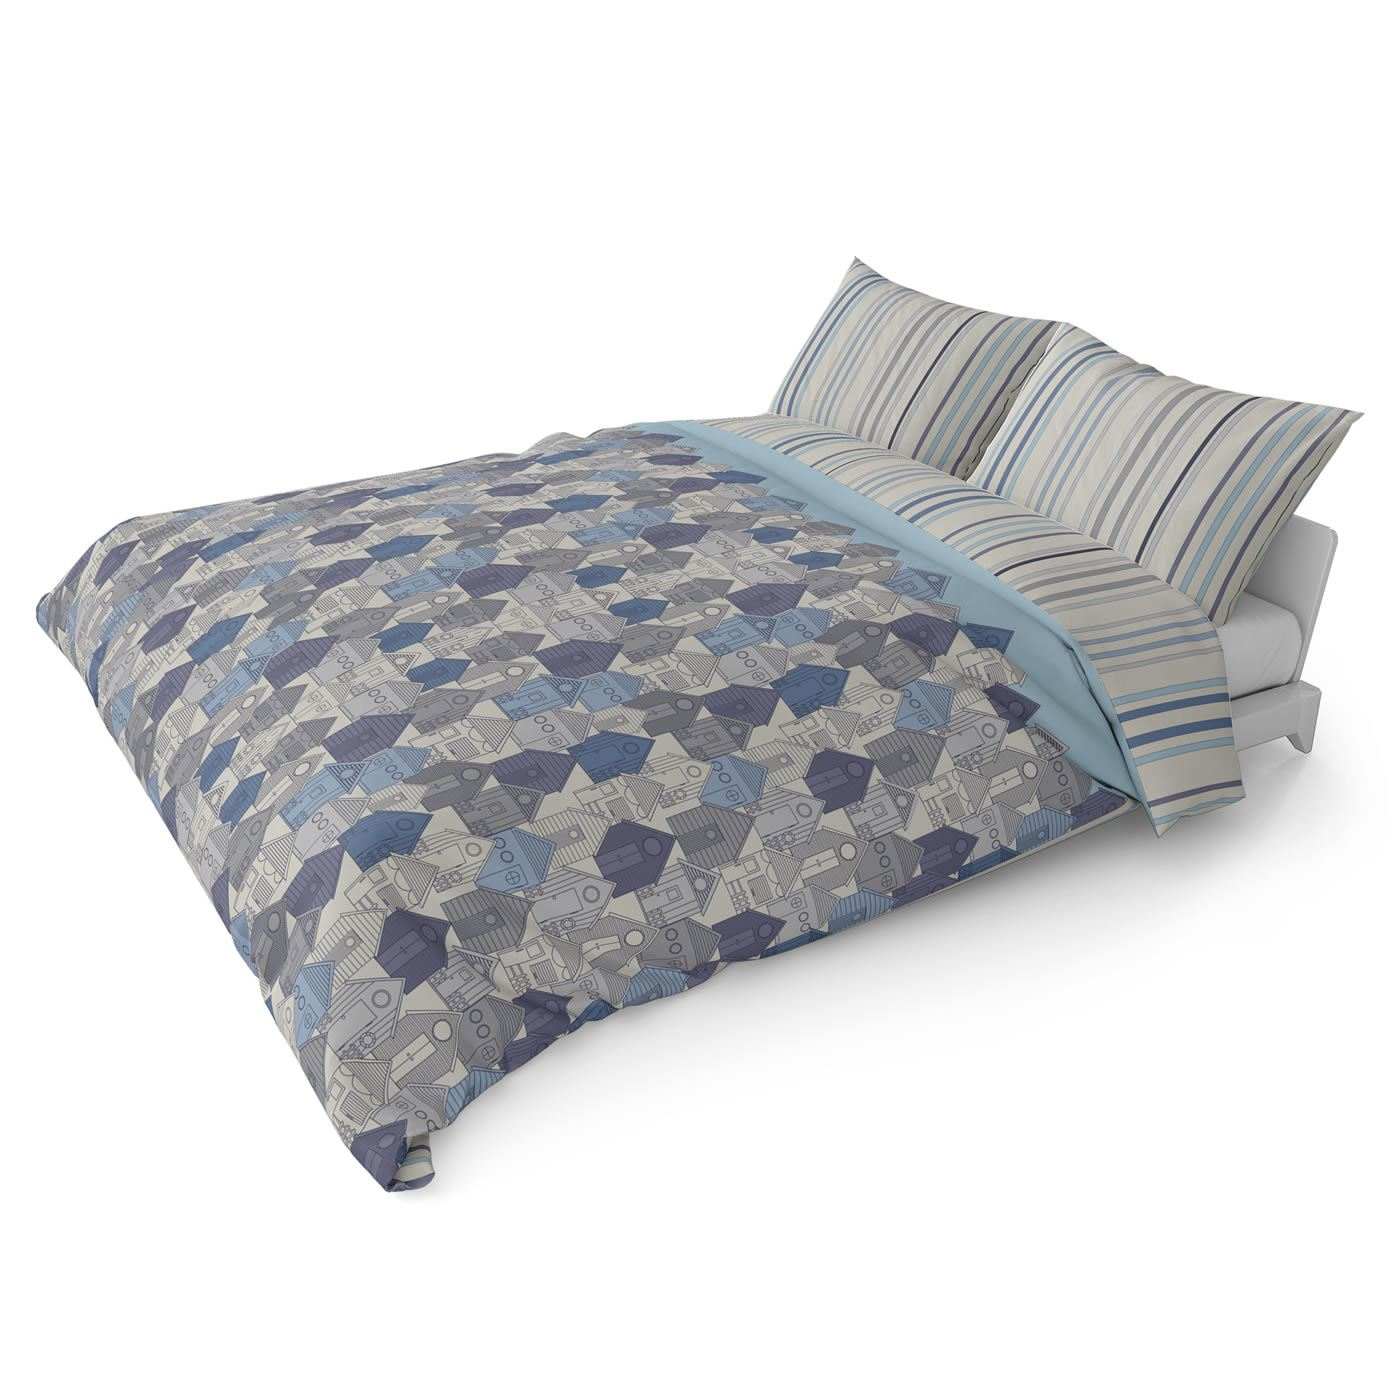 Teal Quilt Cover Blue Duvet Cover Navy Teal Printed Cotton Quilt Set